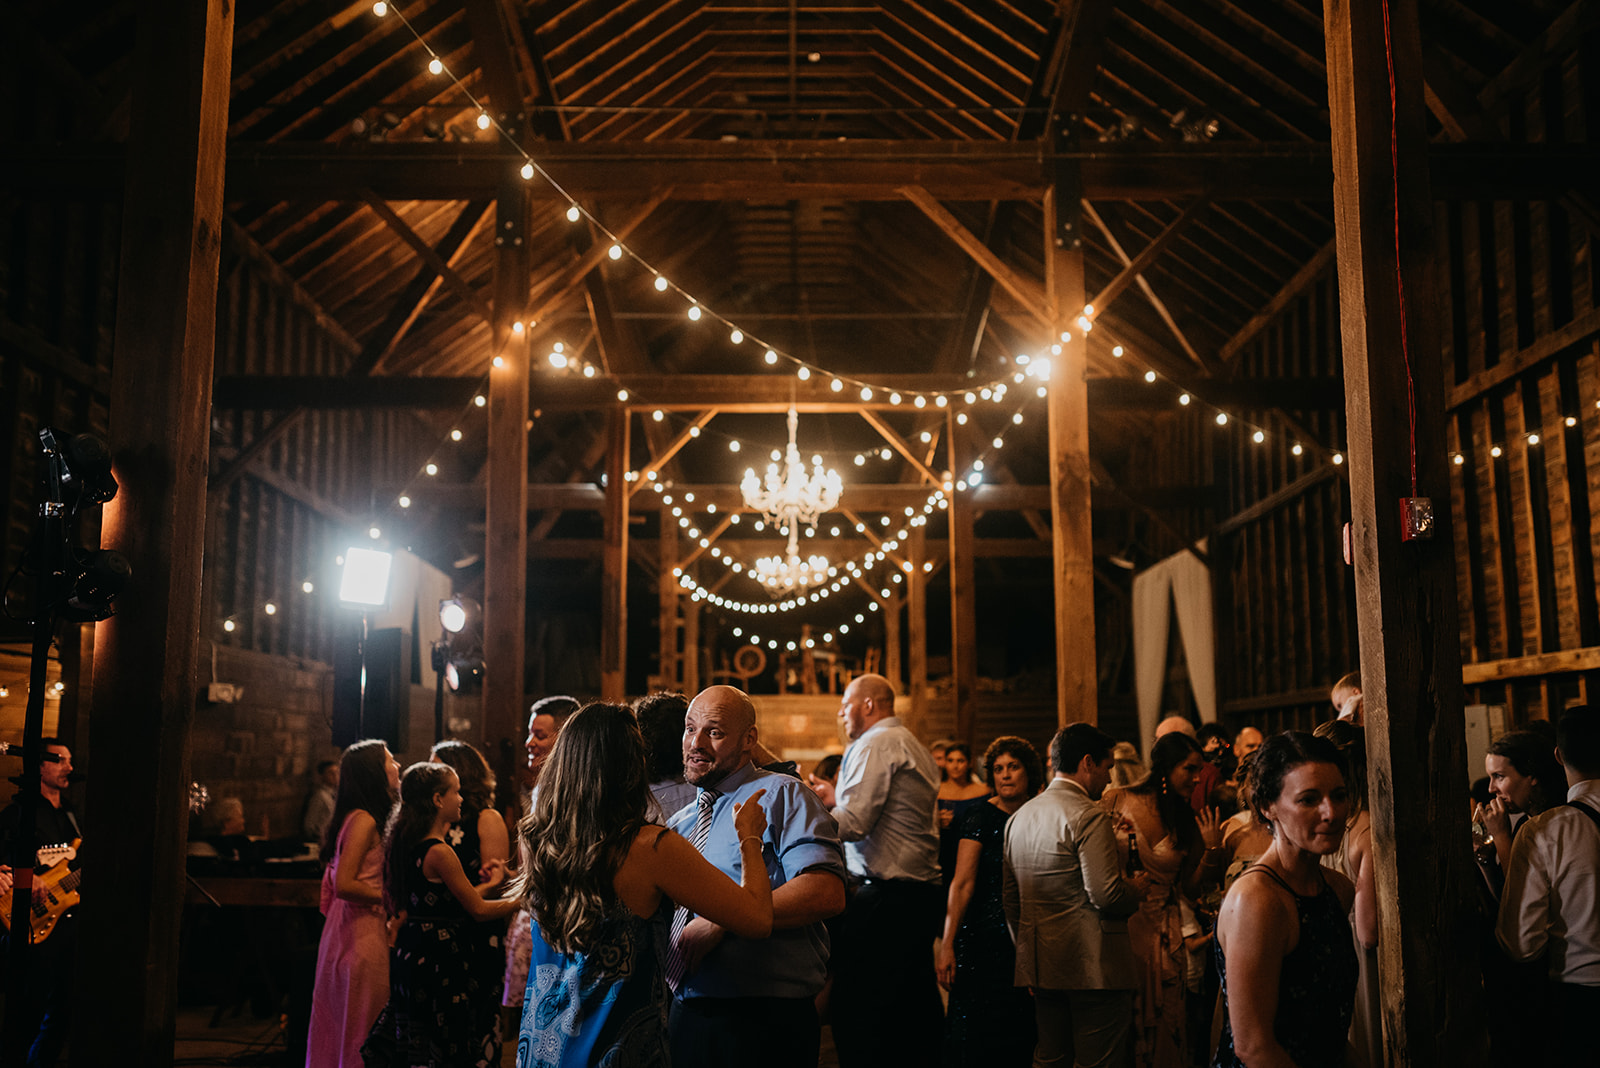 shaker_heritage_barn_wedding_071.jpg